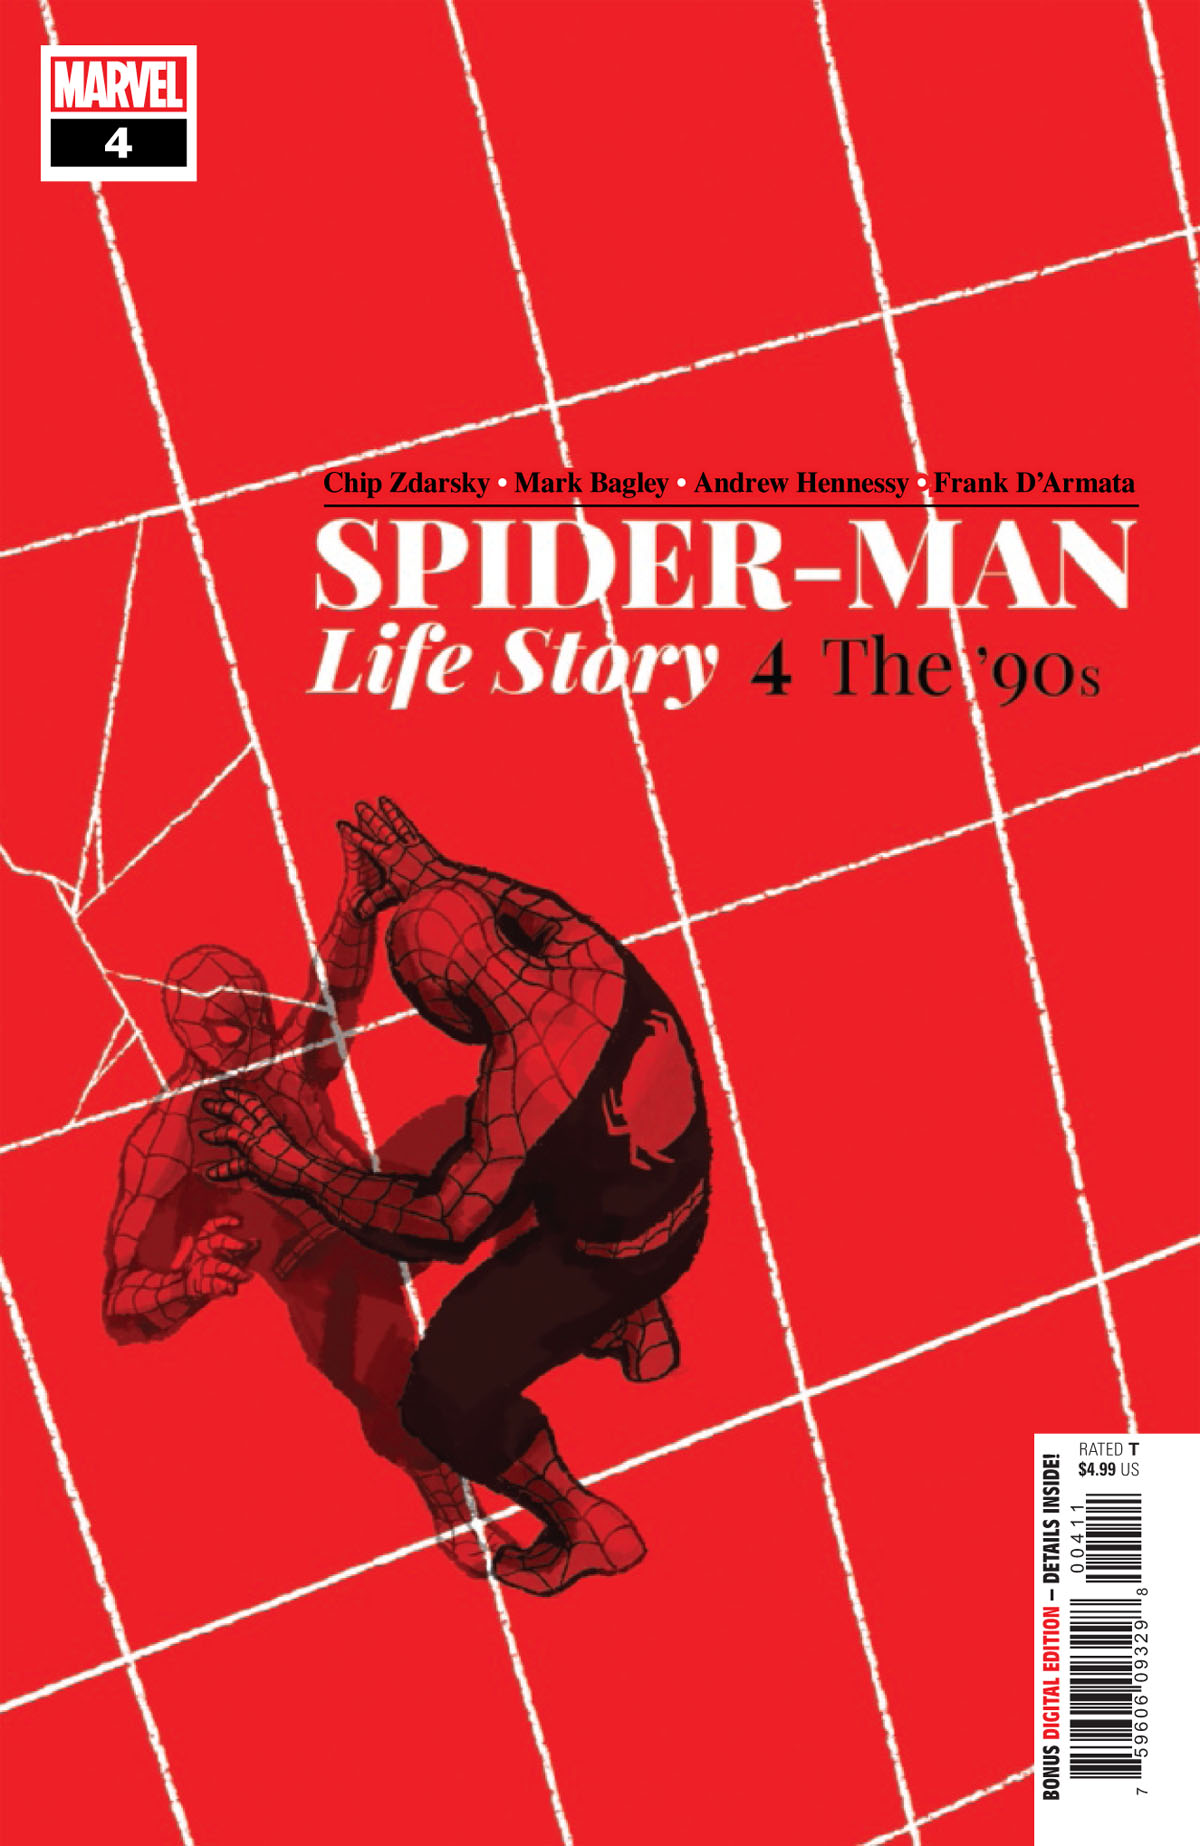 Spider-Man: Life Story #4 cover